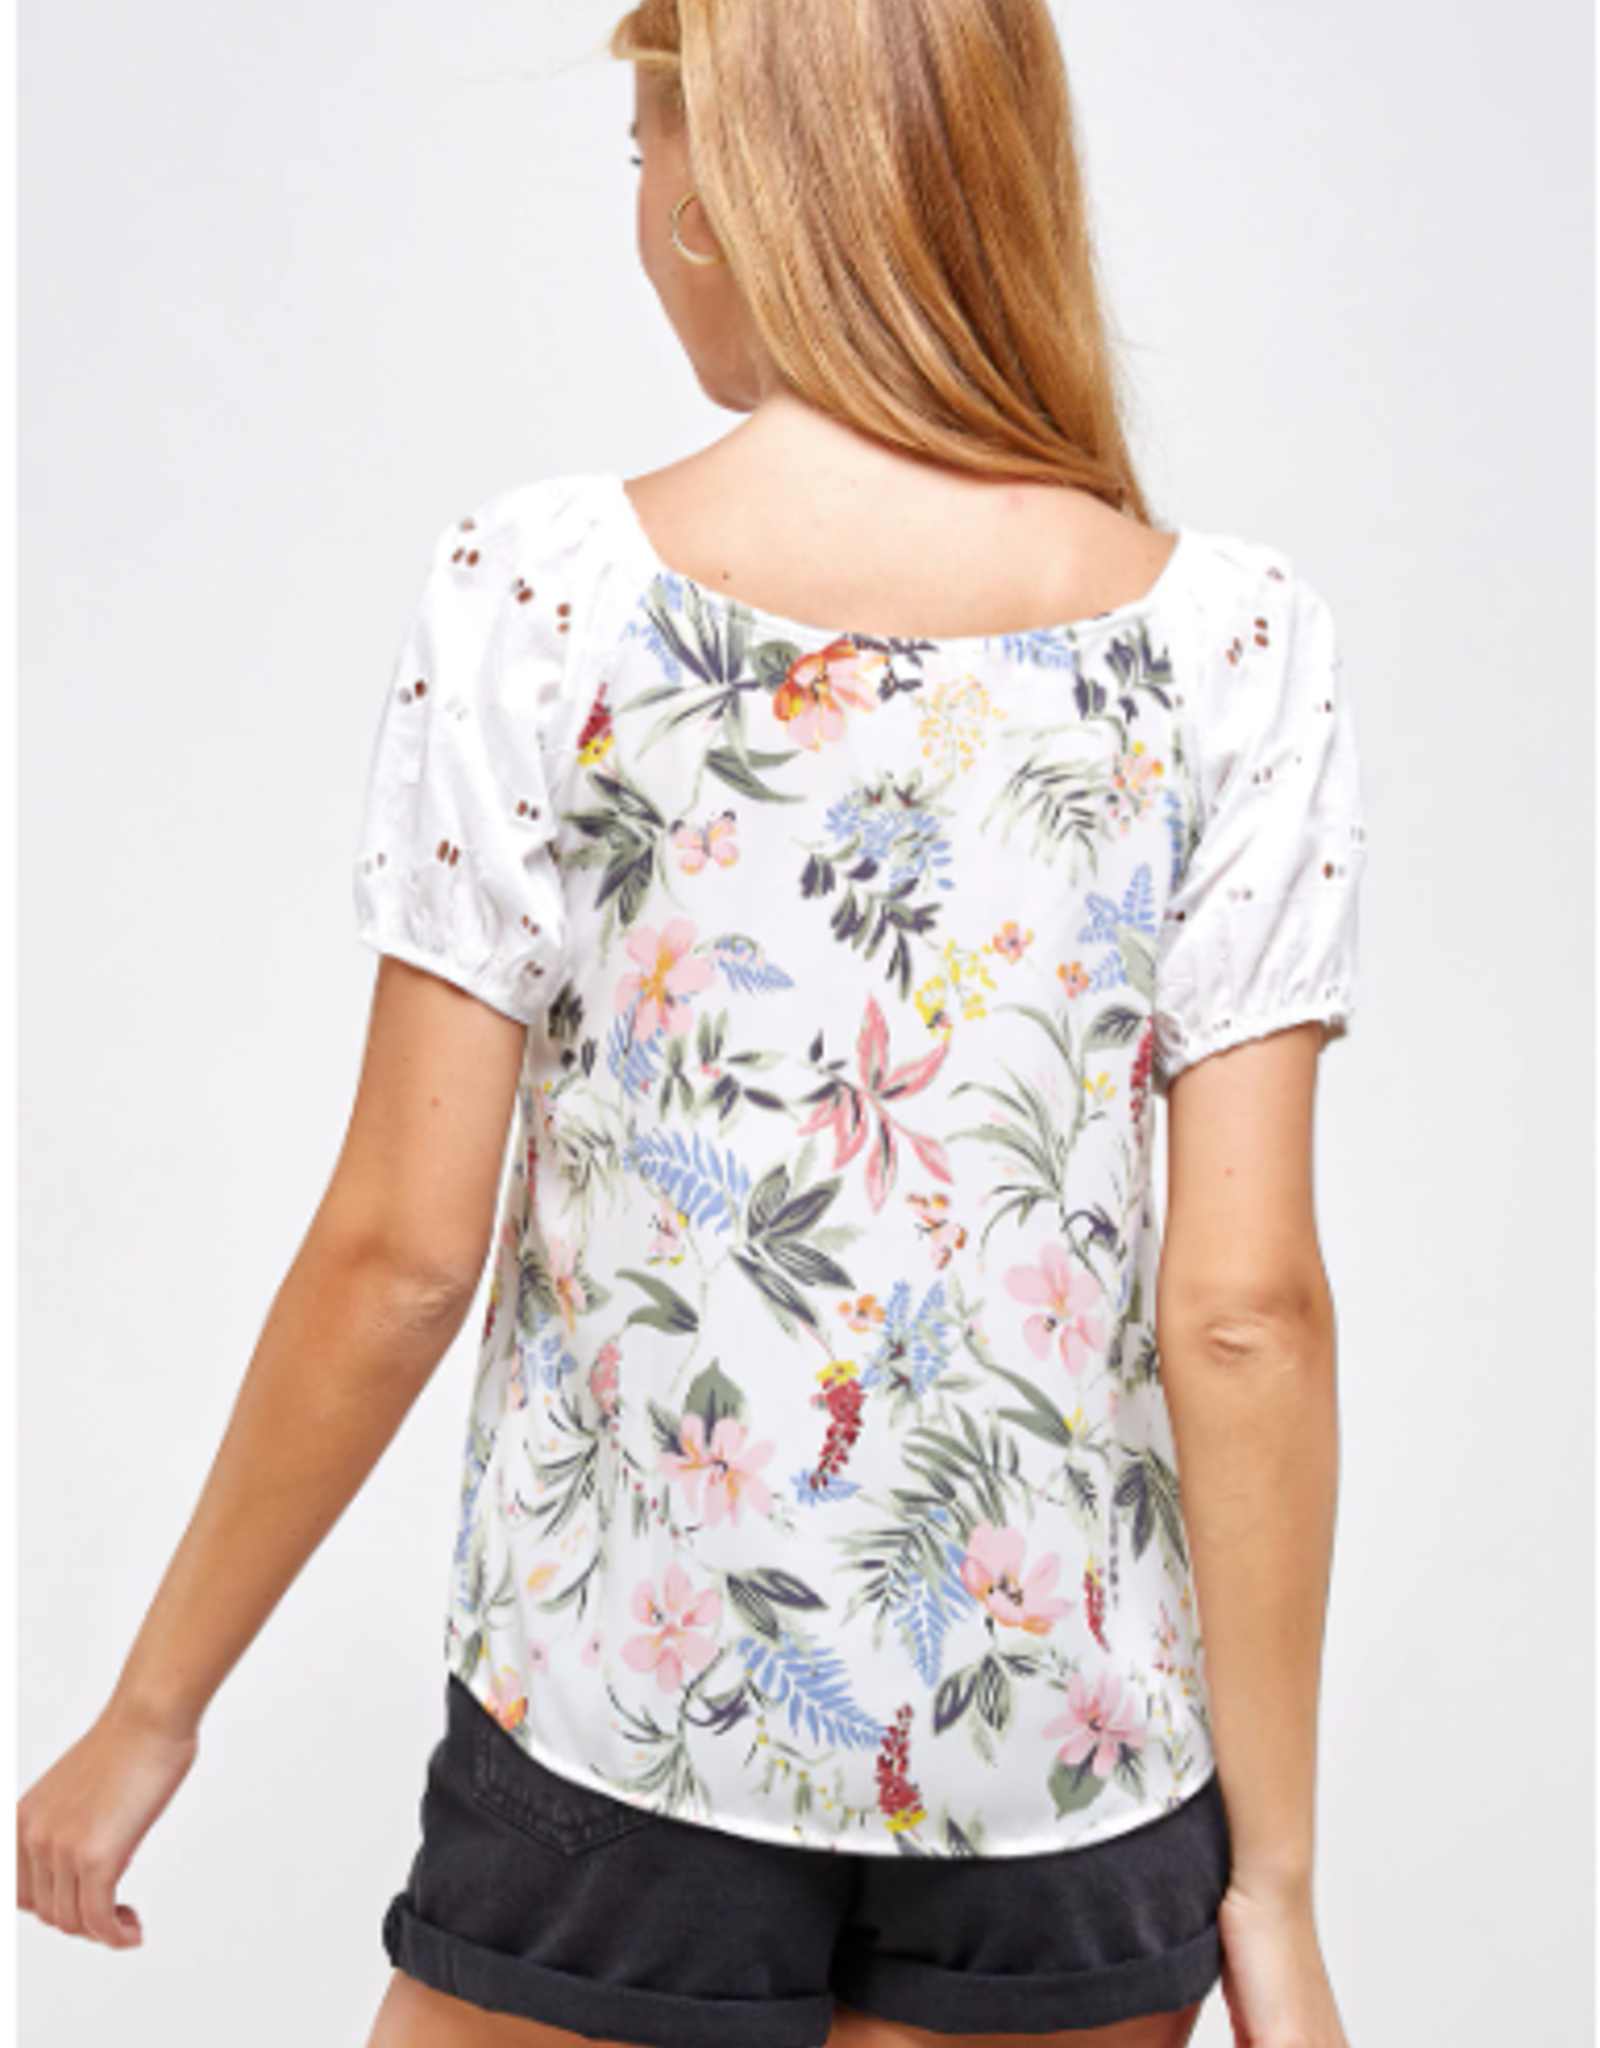 Westmoon floral print top with lace sleeves